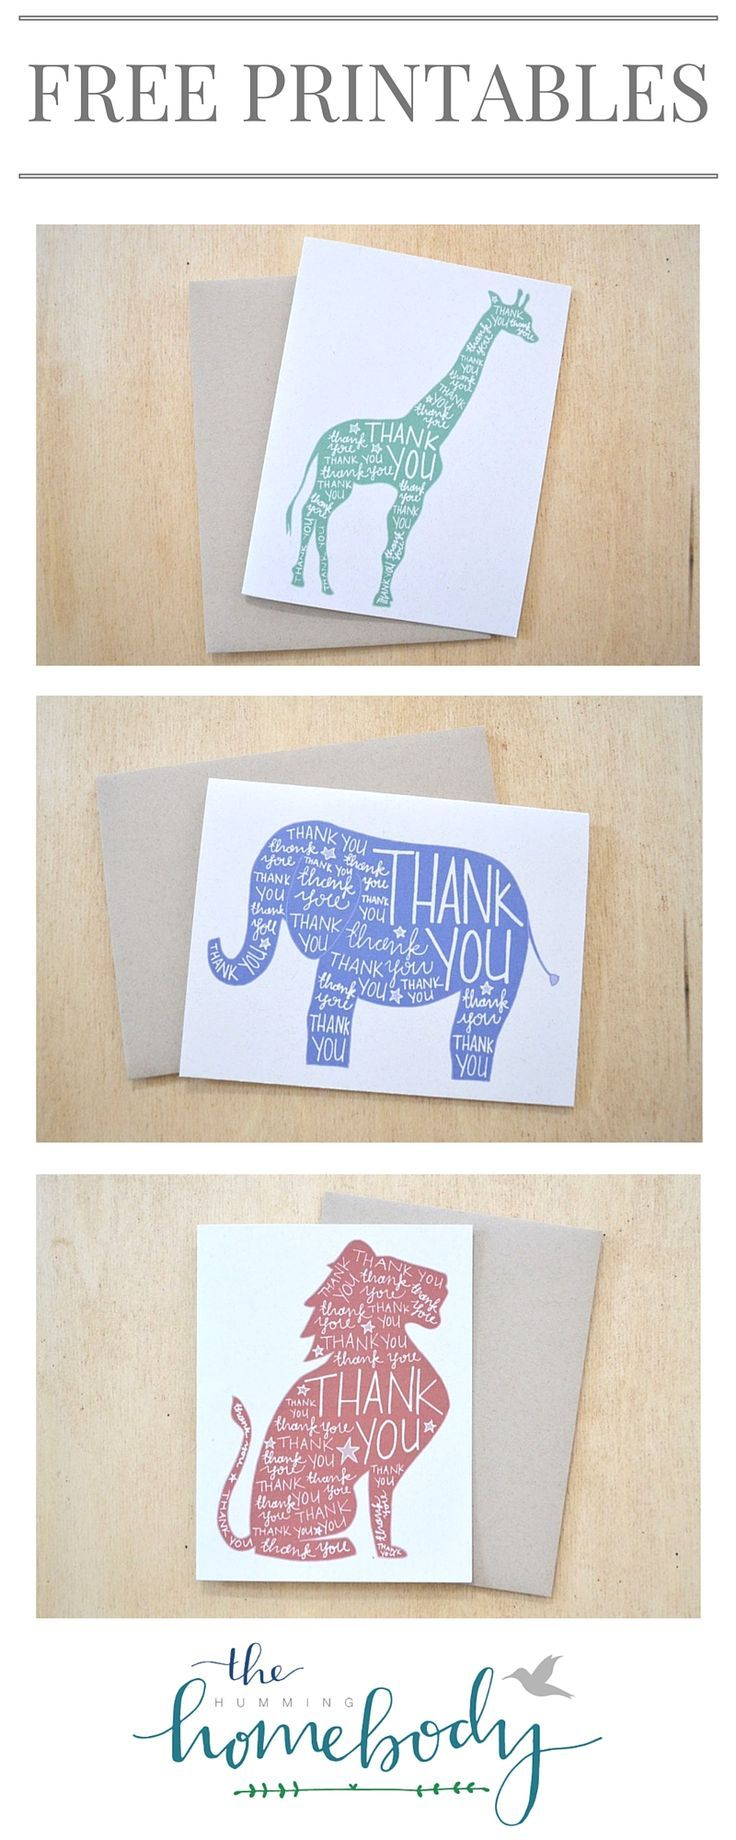 FREE printable safari animal thank you cards. Includes a giraffe, elephant, and lion. Cute for kids birthday or baby shower!